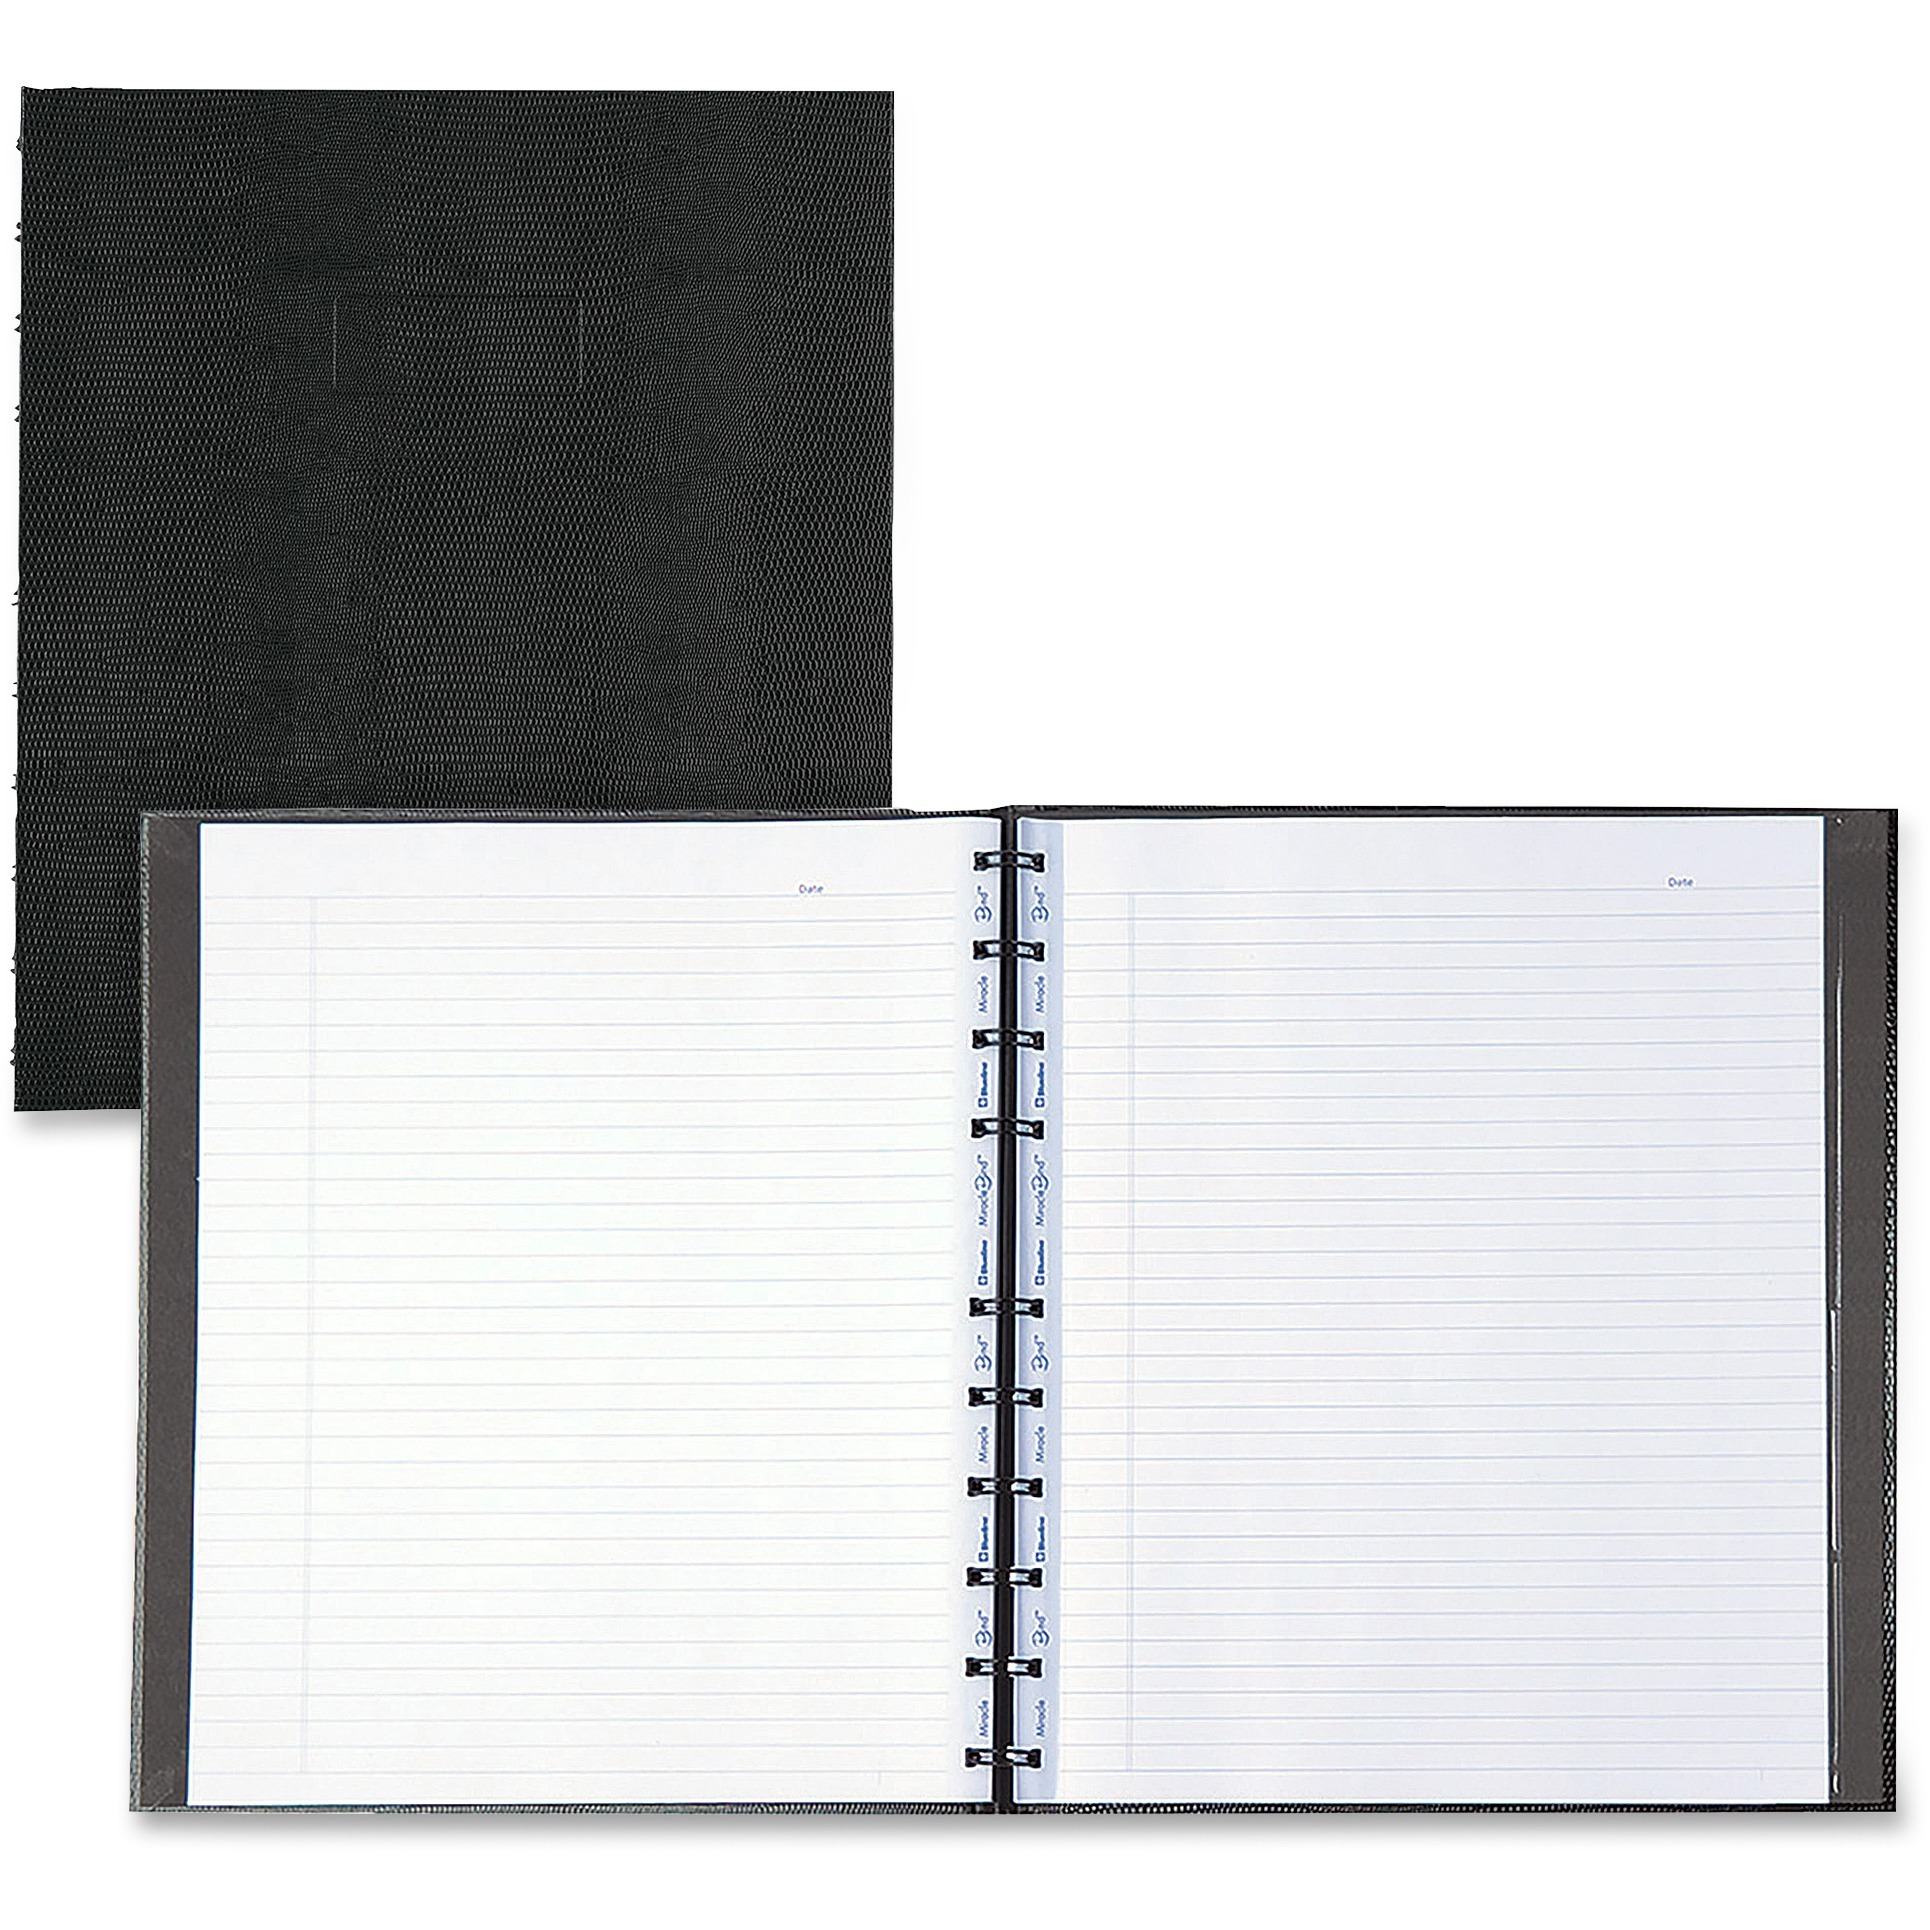 Rediform, REDAF1115081, MiracleBind College Ruled Notebooks - Letter, 1 Each